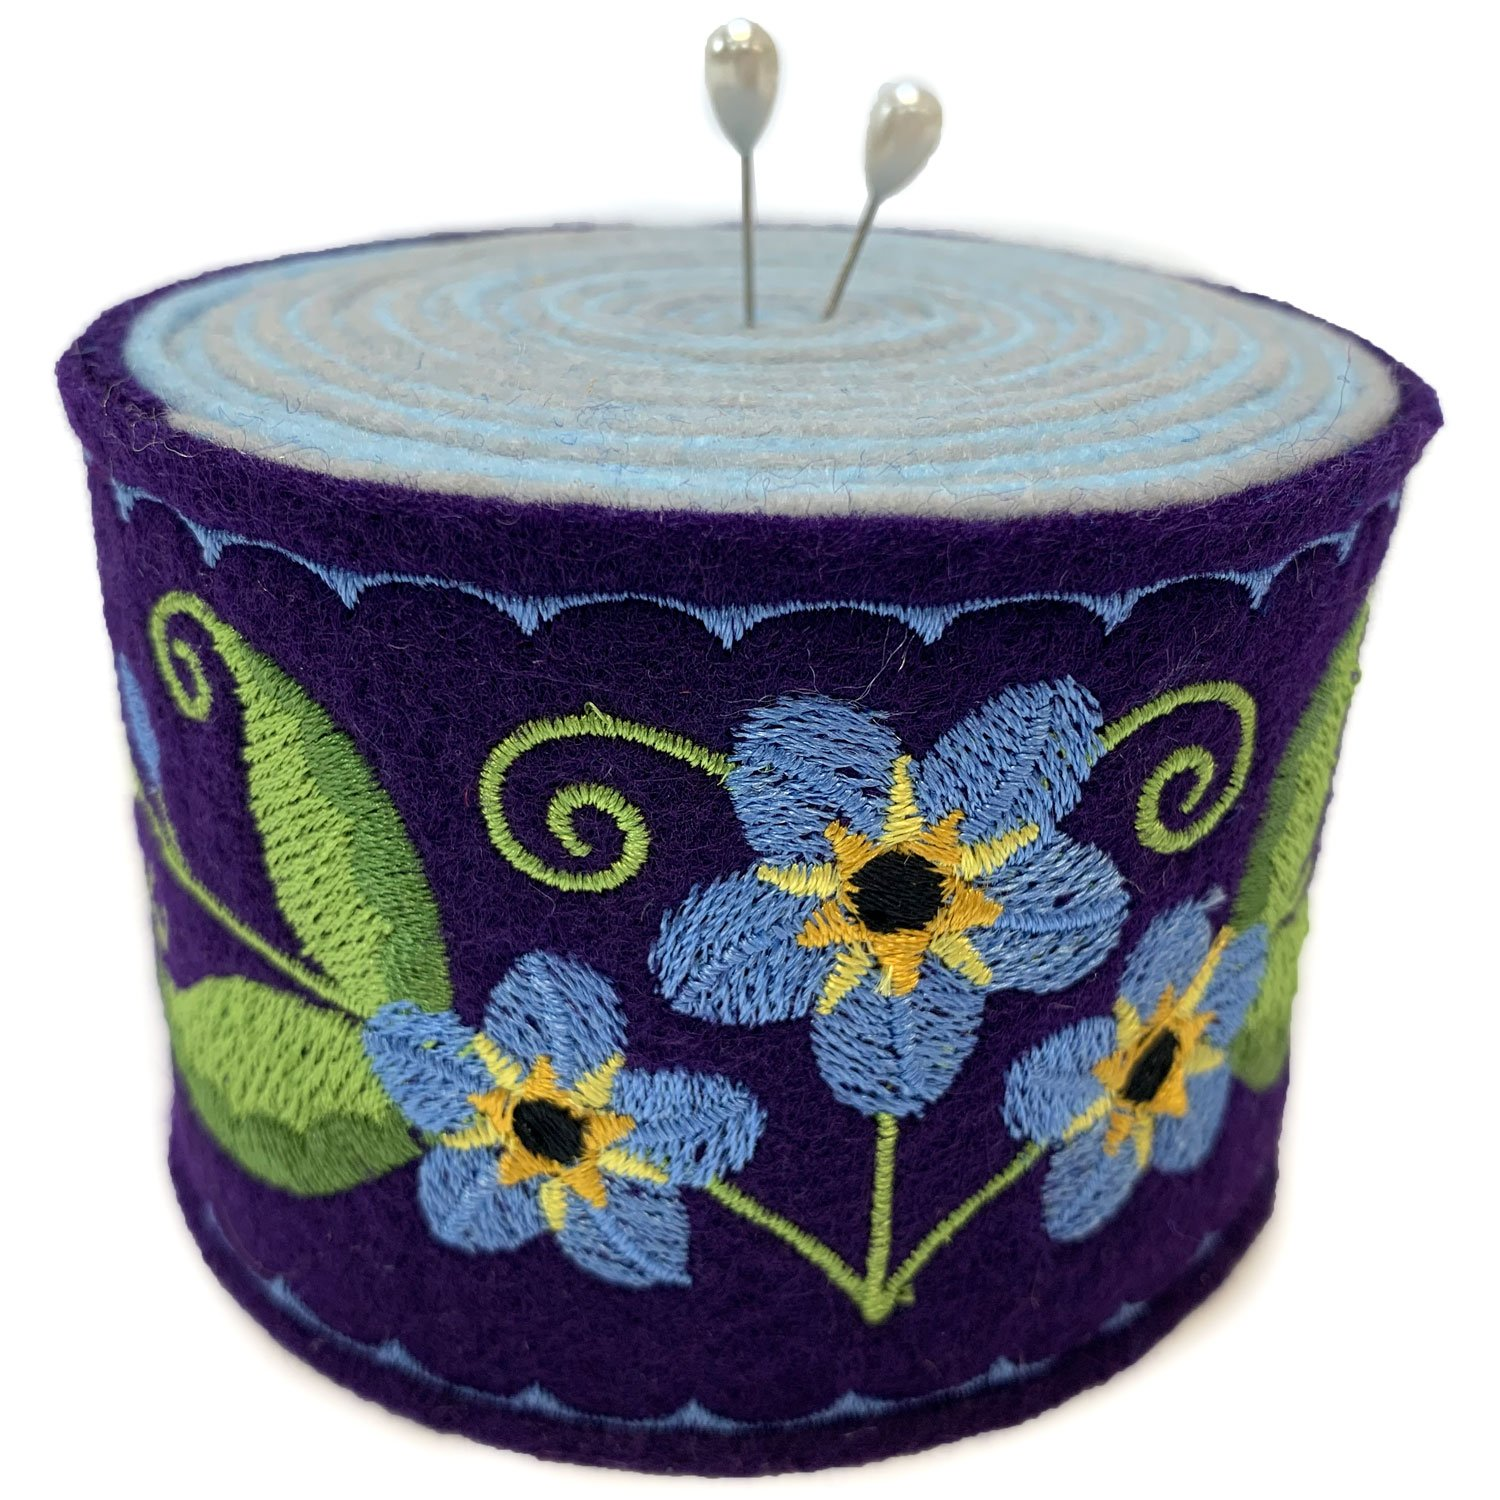 Embroidered Felt Pincushion Forget-Me-Not